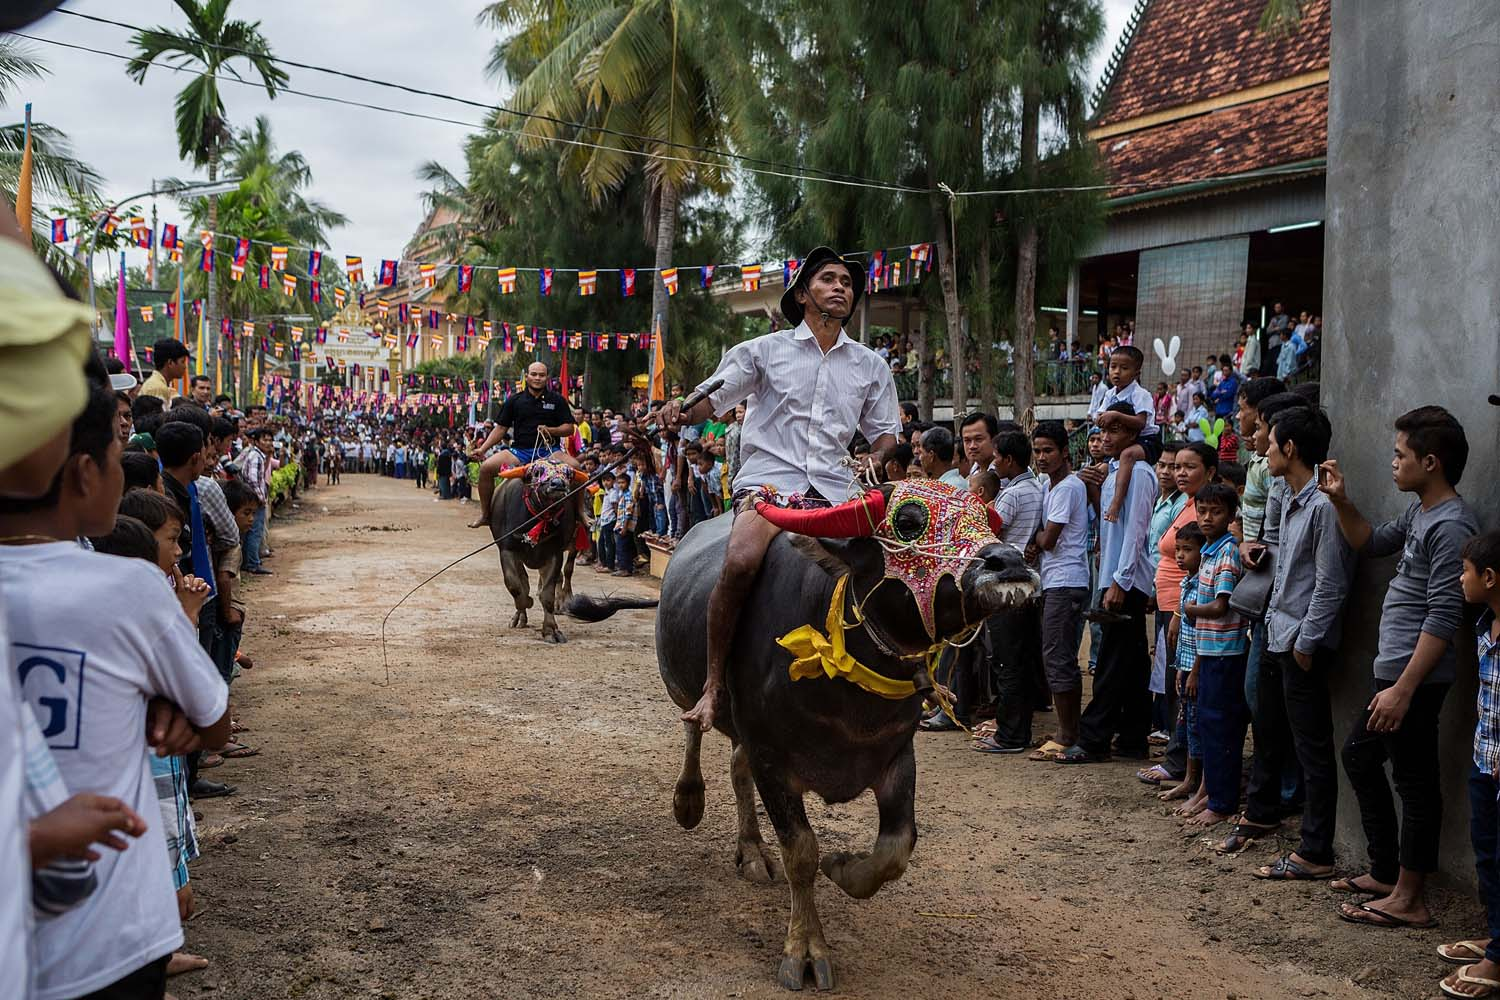 Oct. 4, 2013. Buffalo riders compete during the annual Viear Sour races held as part of the Festival of the Dead in Vihear Sour, Cambodia.